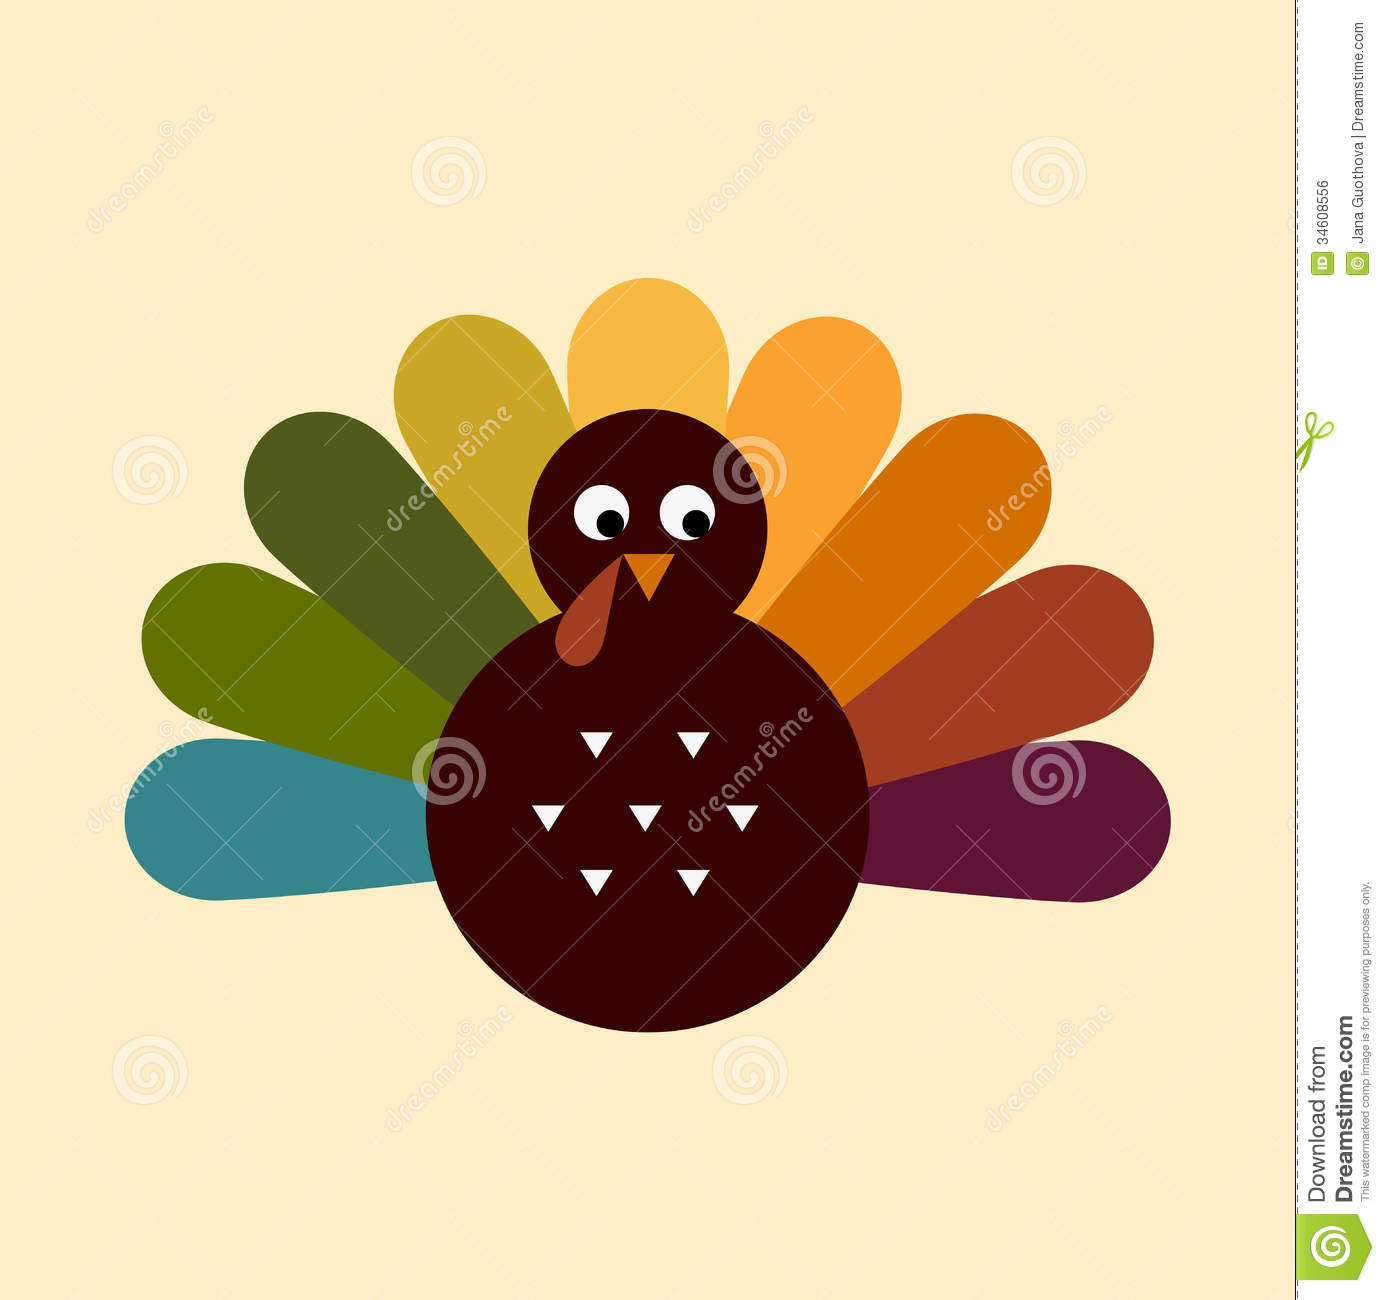 Cute Retro Thanksgiving Turkey Royalty Free Stock Image